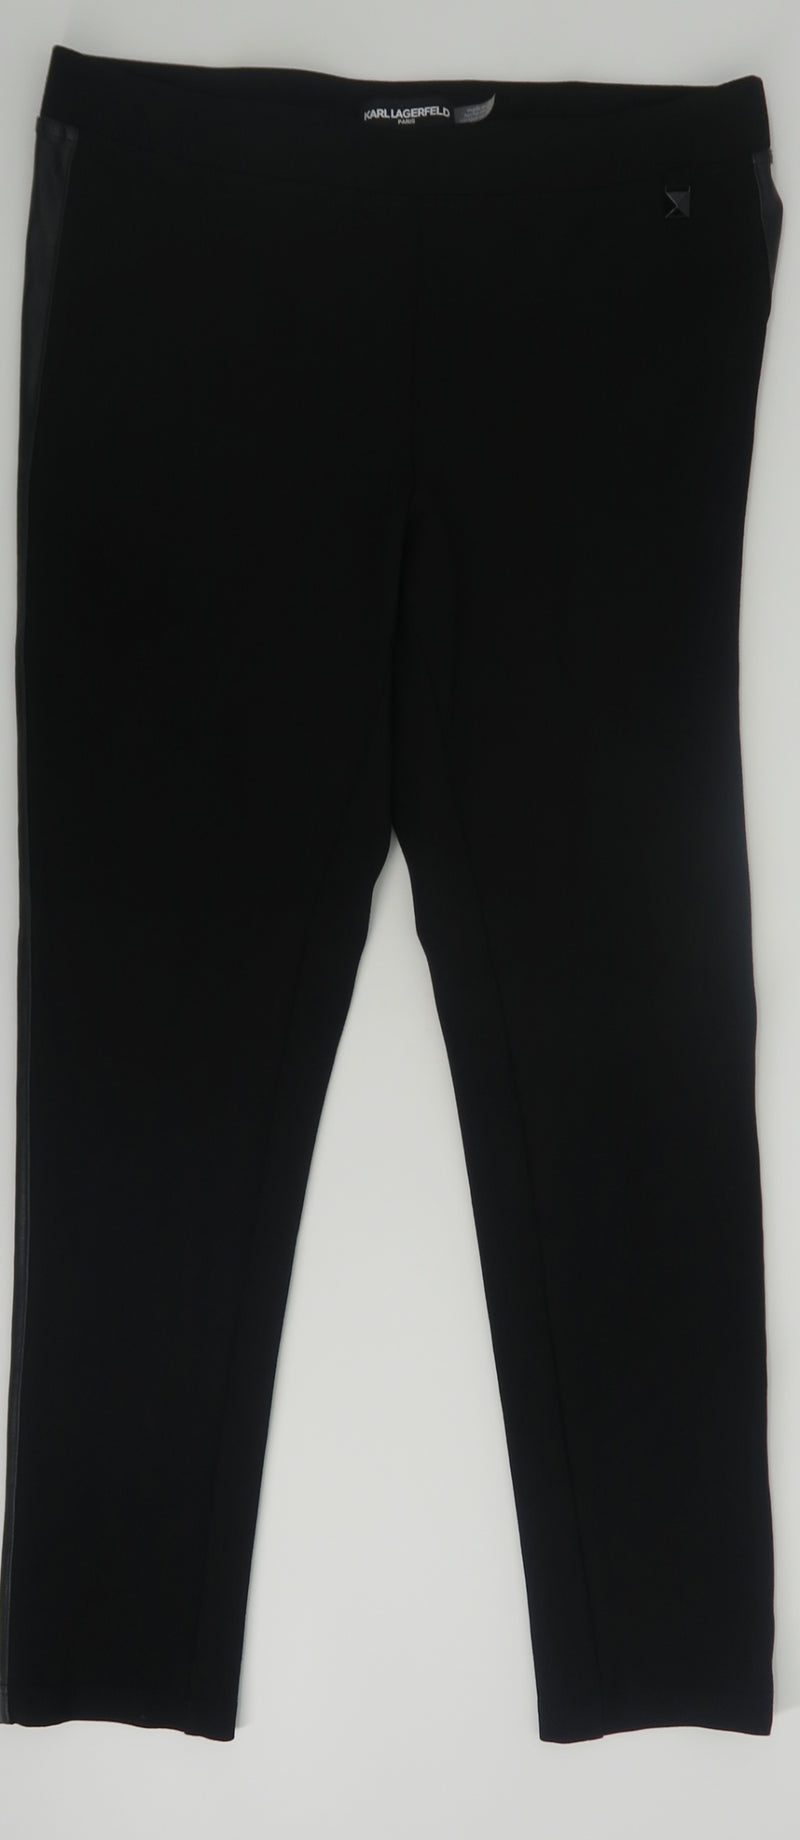 Karl Lagerfeld Leggings